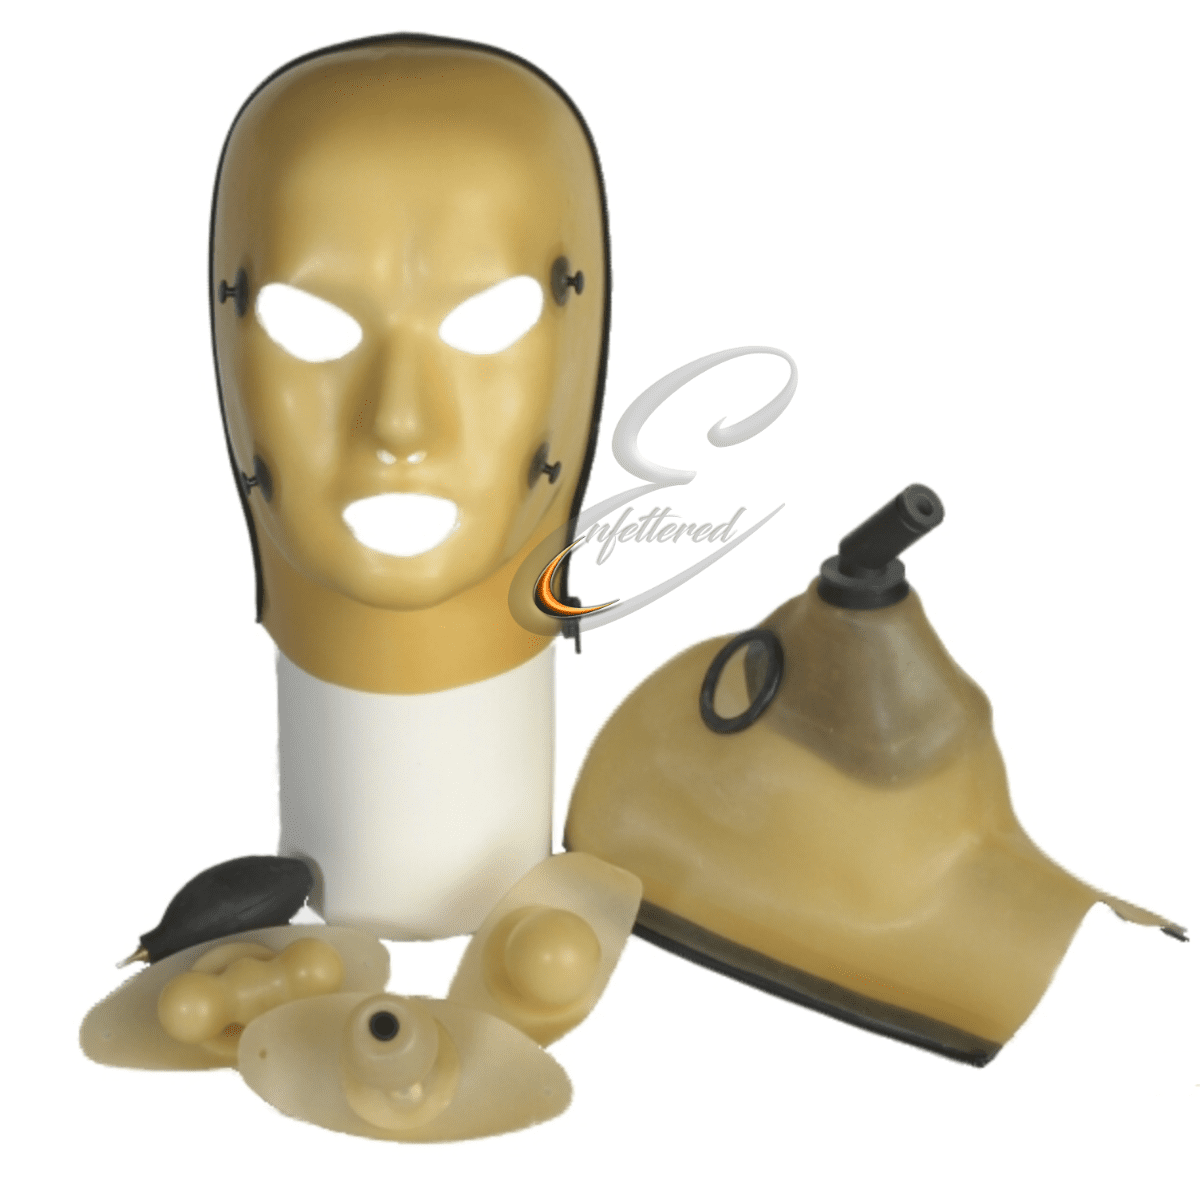 Enfettered Heavy Rubber 2 piece Multi Function ANAESTHESIA Hood